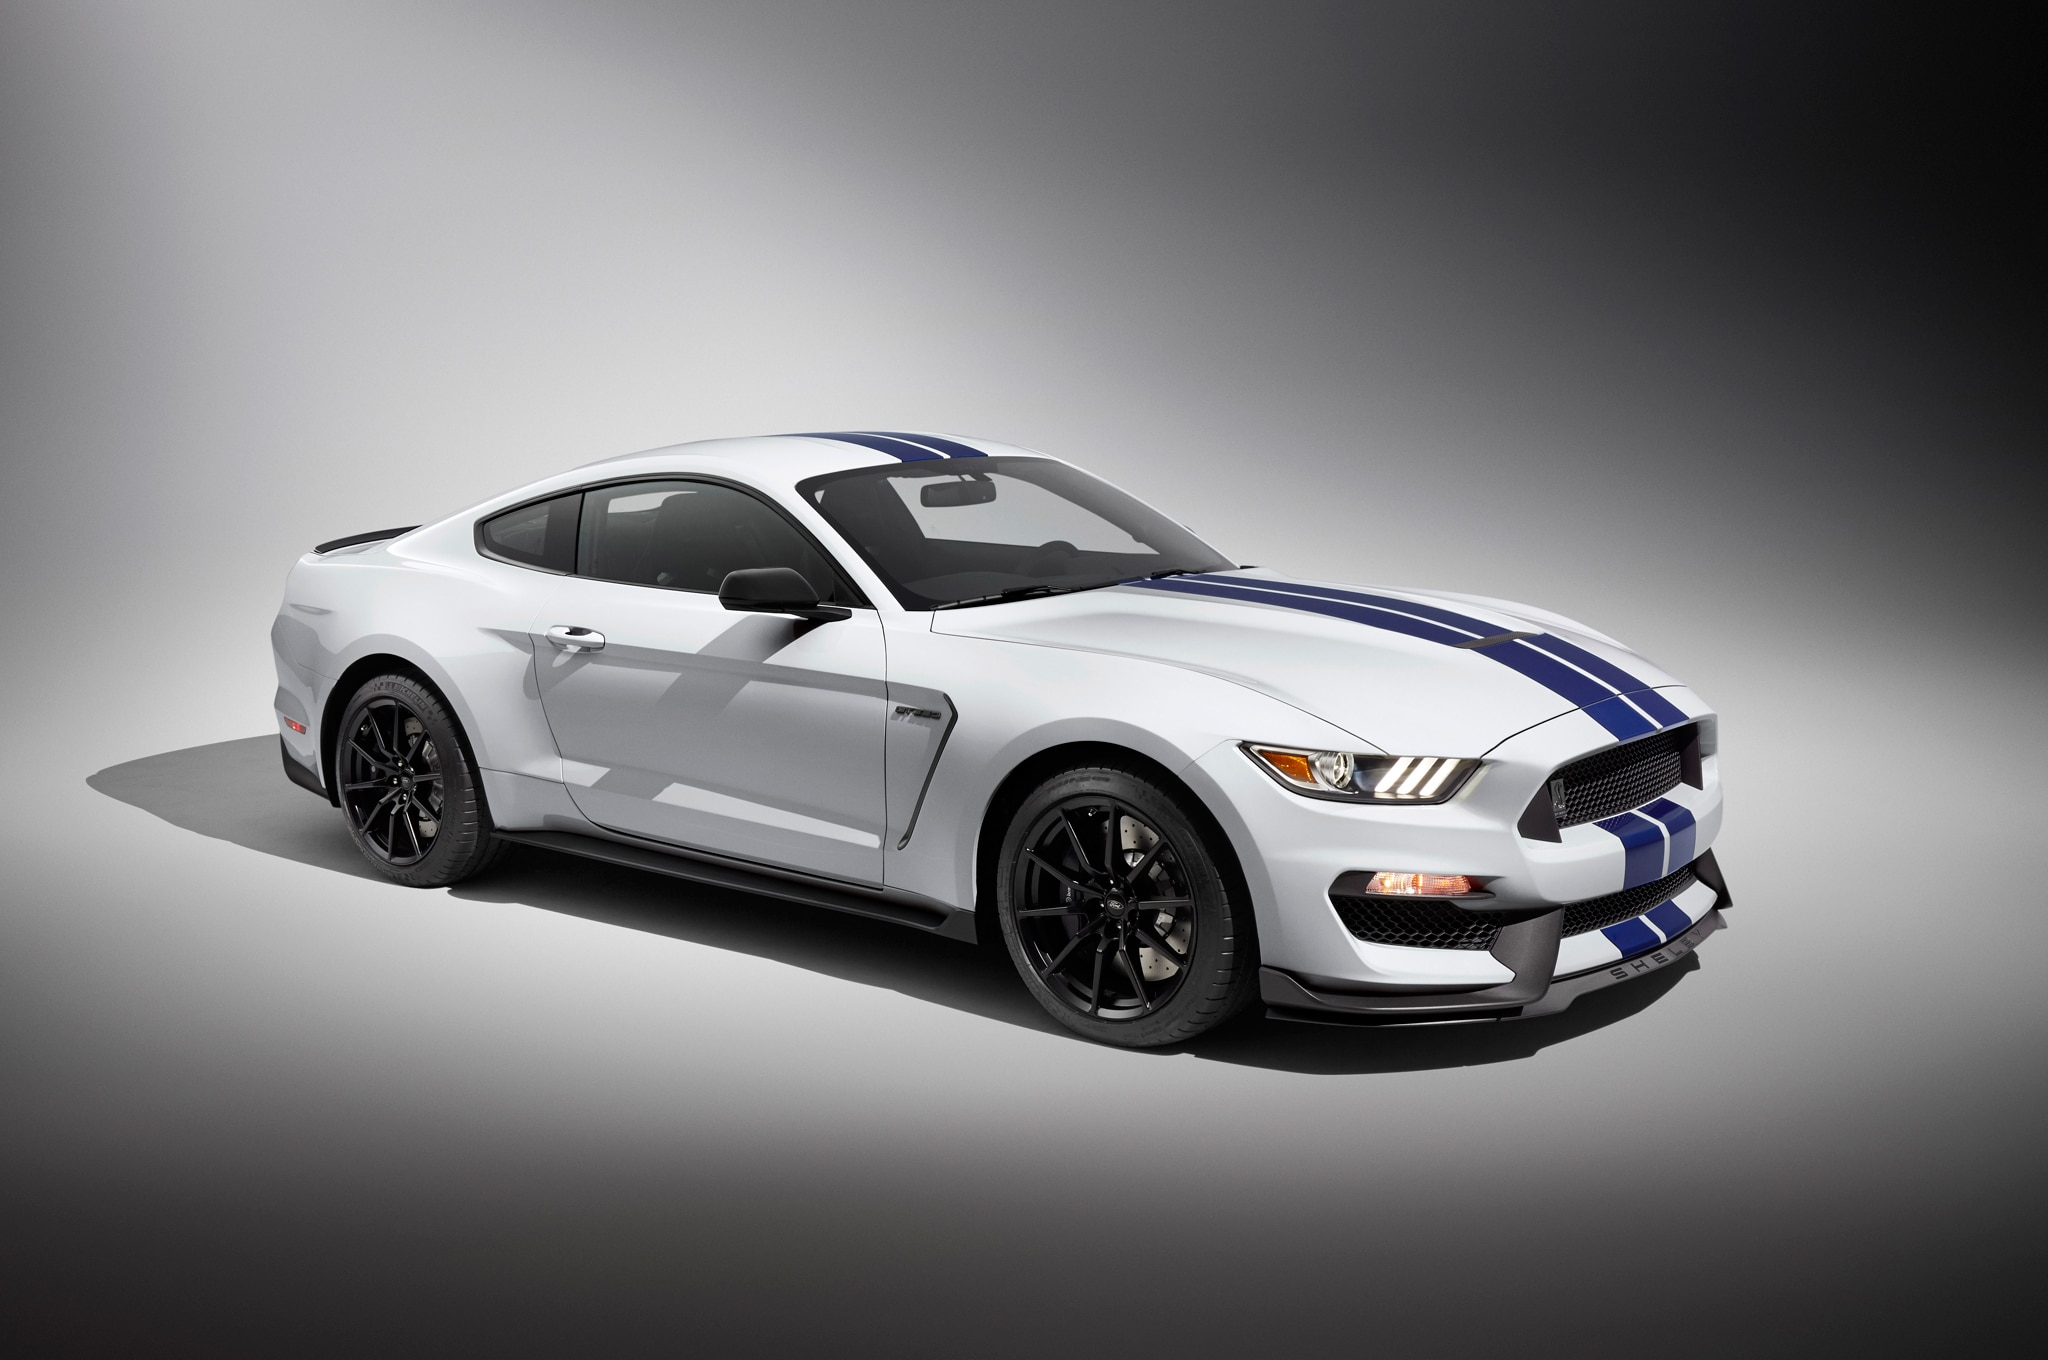 10 Things to Know about the Ford Shelby GT350 Mustang's V-8 Engine